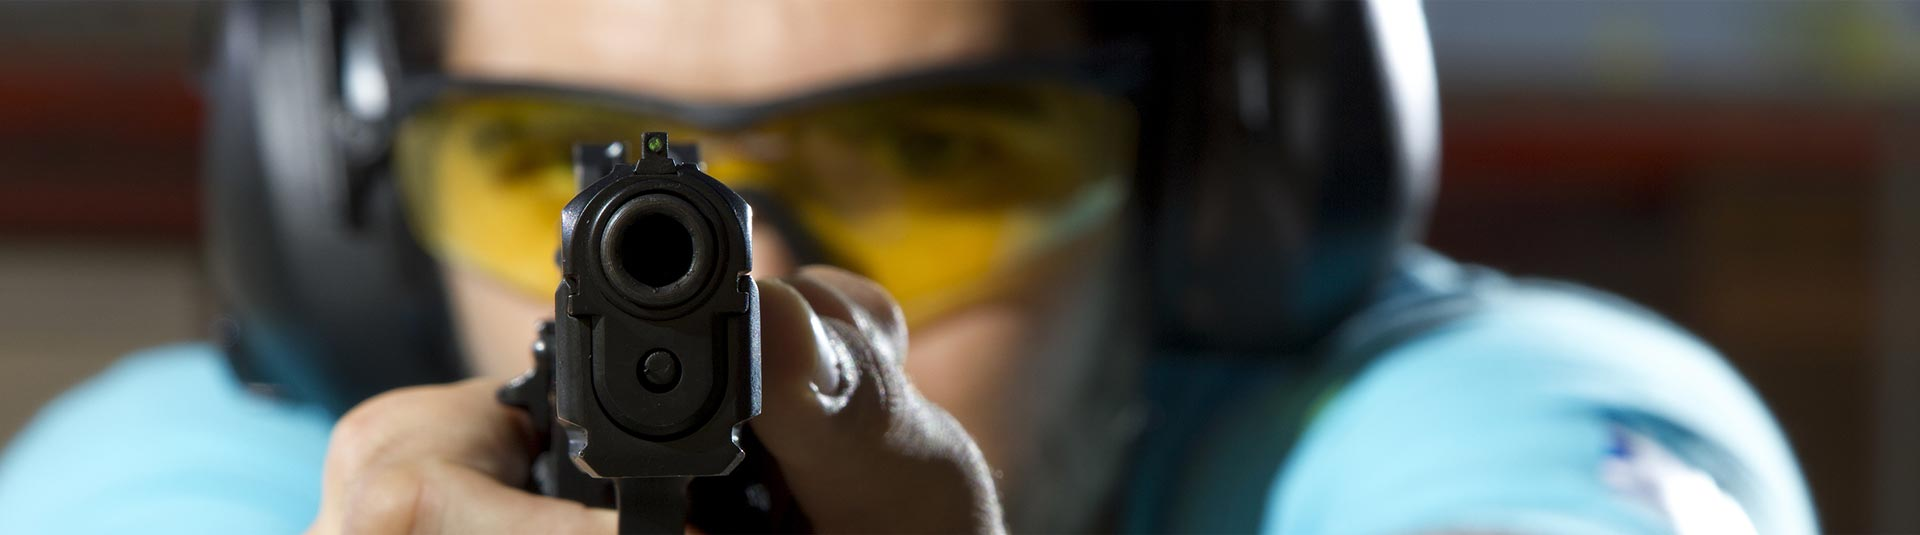 Woman at shooting range behind a gun with yellow goggles and headphones on.